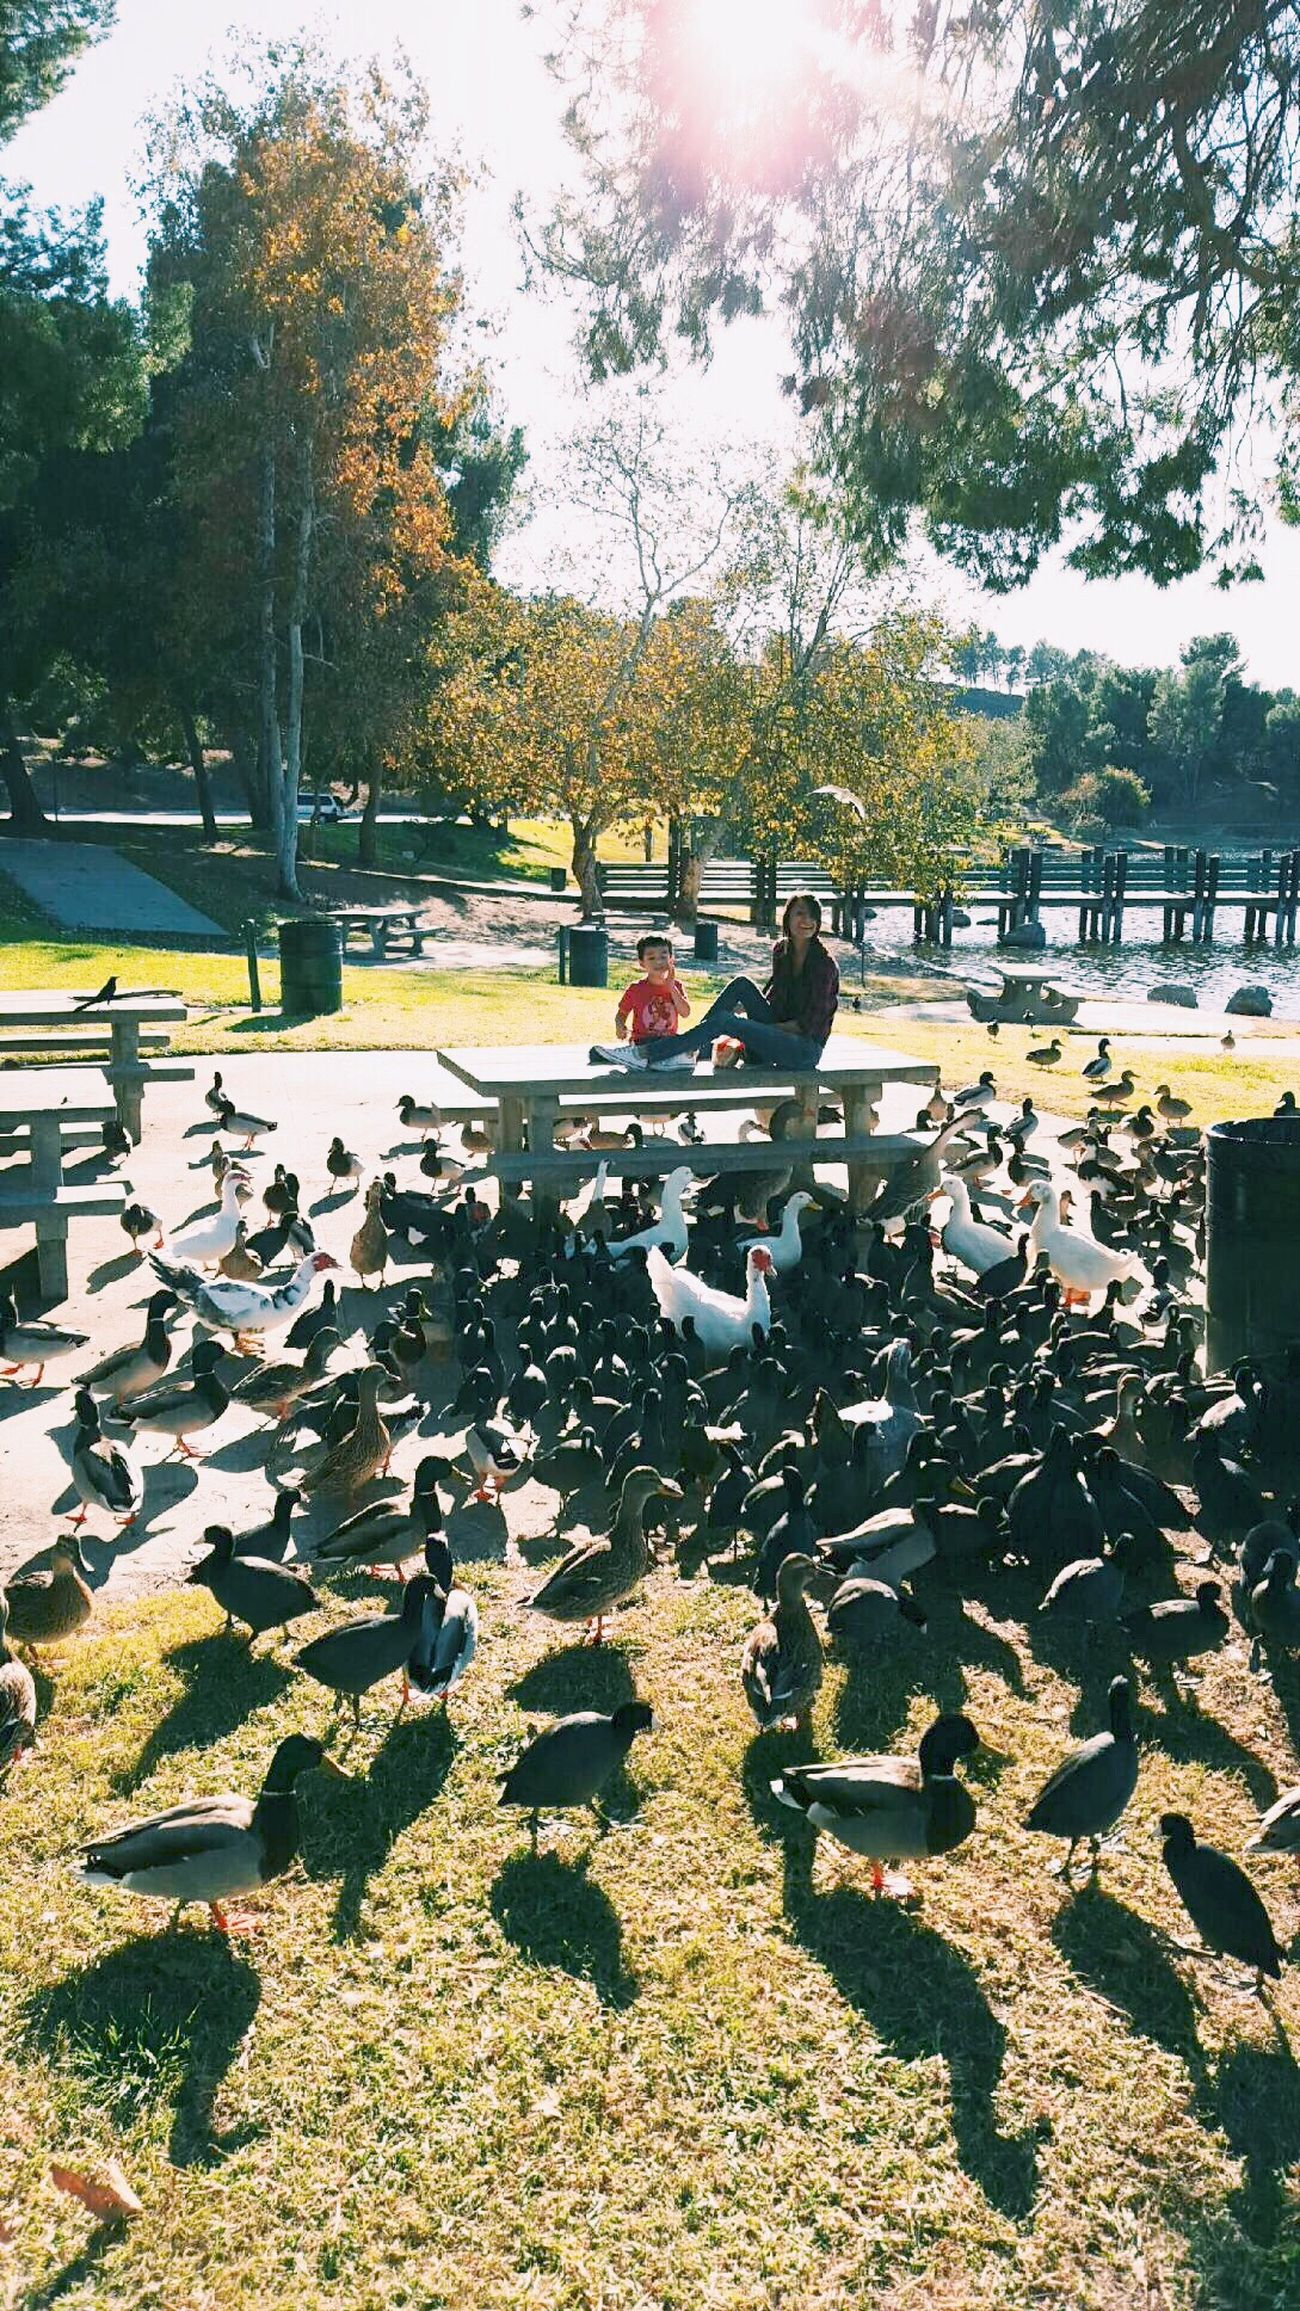 Ducks Feeding The Birds Nephewlove Bonelli